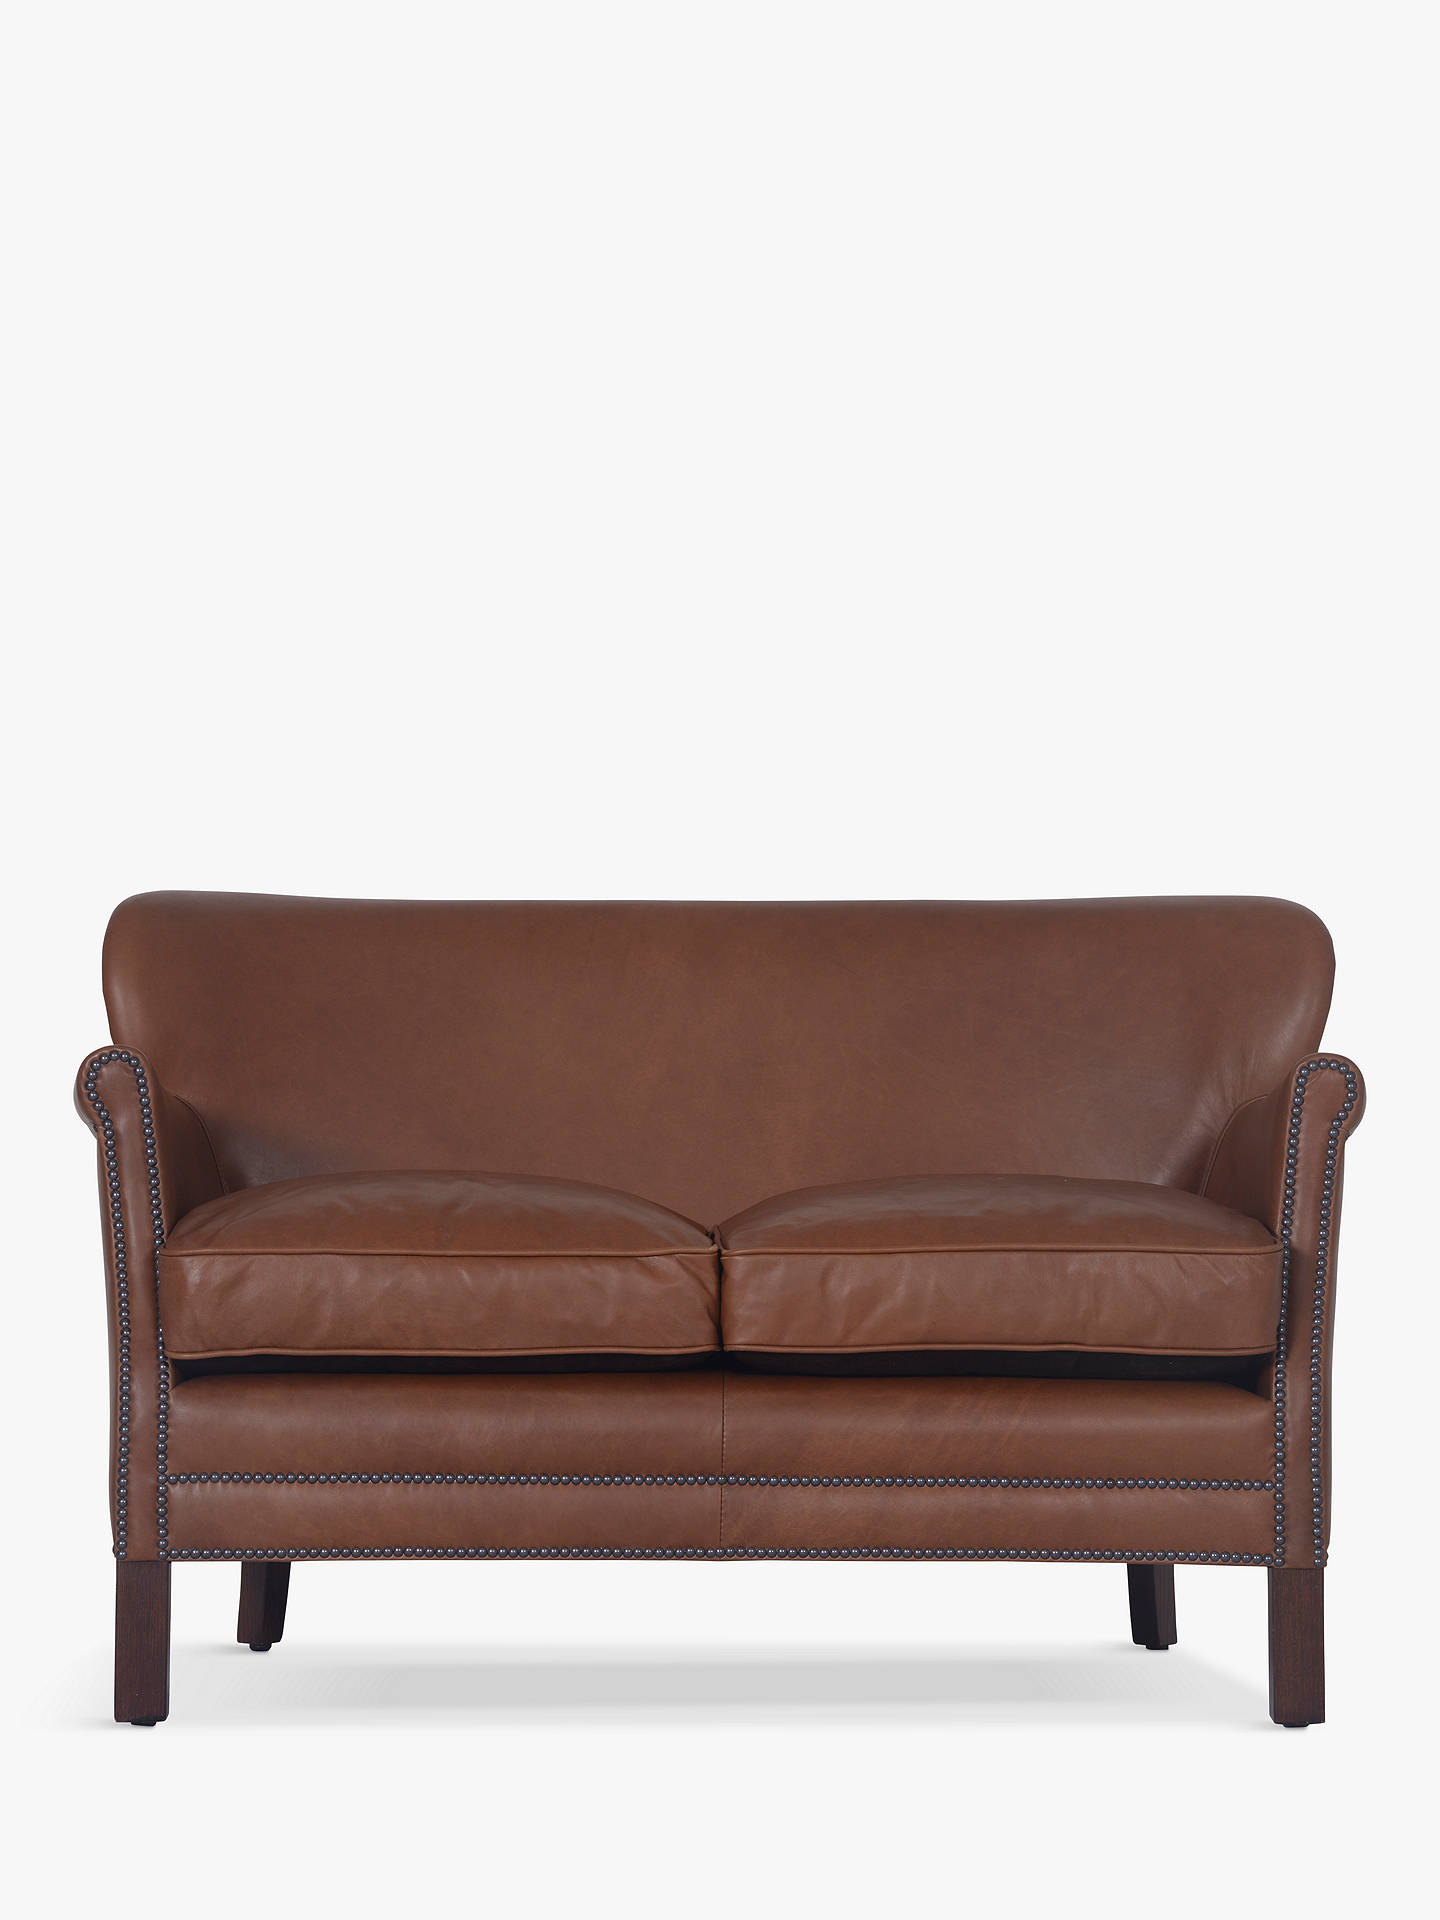 Halo Little Professor Aniline Leather Pee 2 Seater Sofa Riders Nut Online At Johnlewis